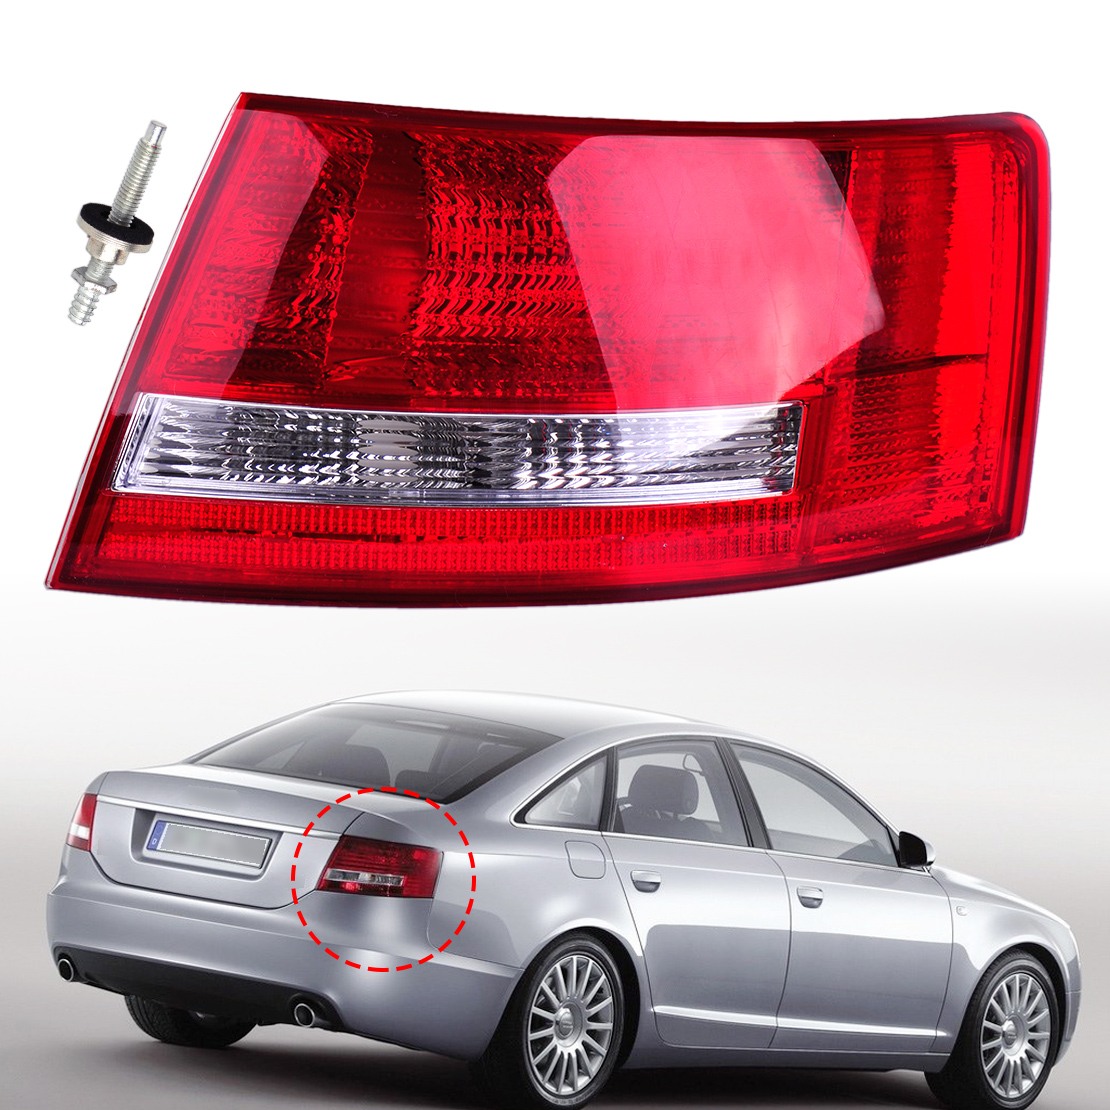 4F5945096D 4F5 945 096D Right Tail Light Assembly Lamp Housing without Bulb fit for Audi A6/A6 Quattro Sedan 2005 2006 2007 2008 free shipping for skoda octavia sedan a5 2005 2006 2007 2008 right side rear lamp tail light